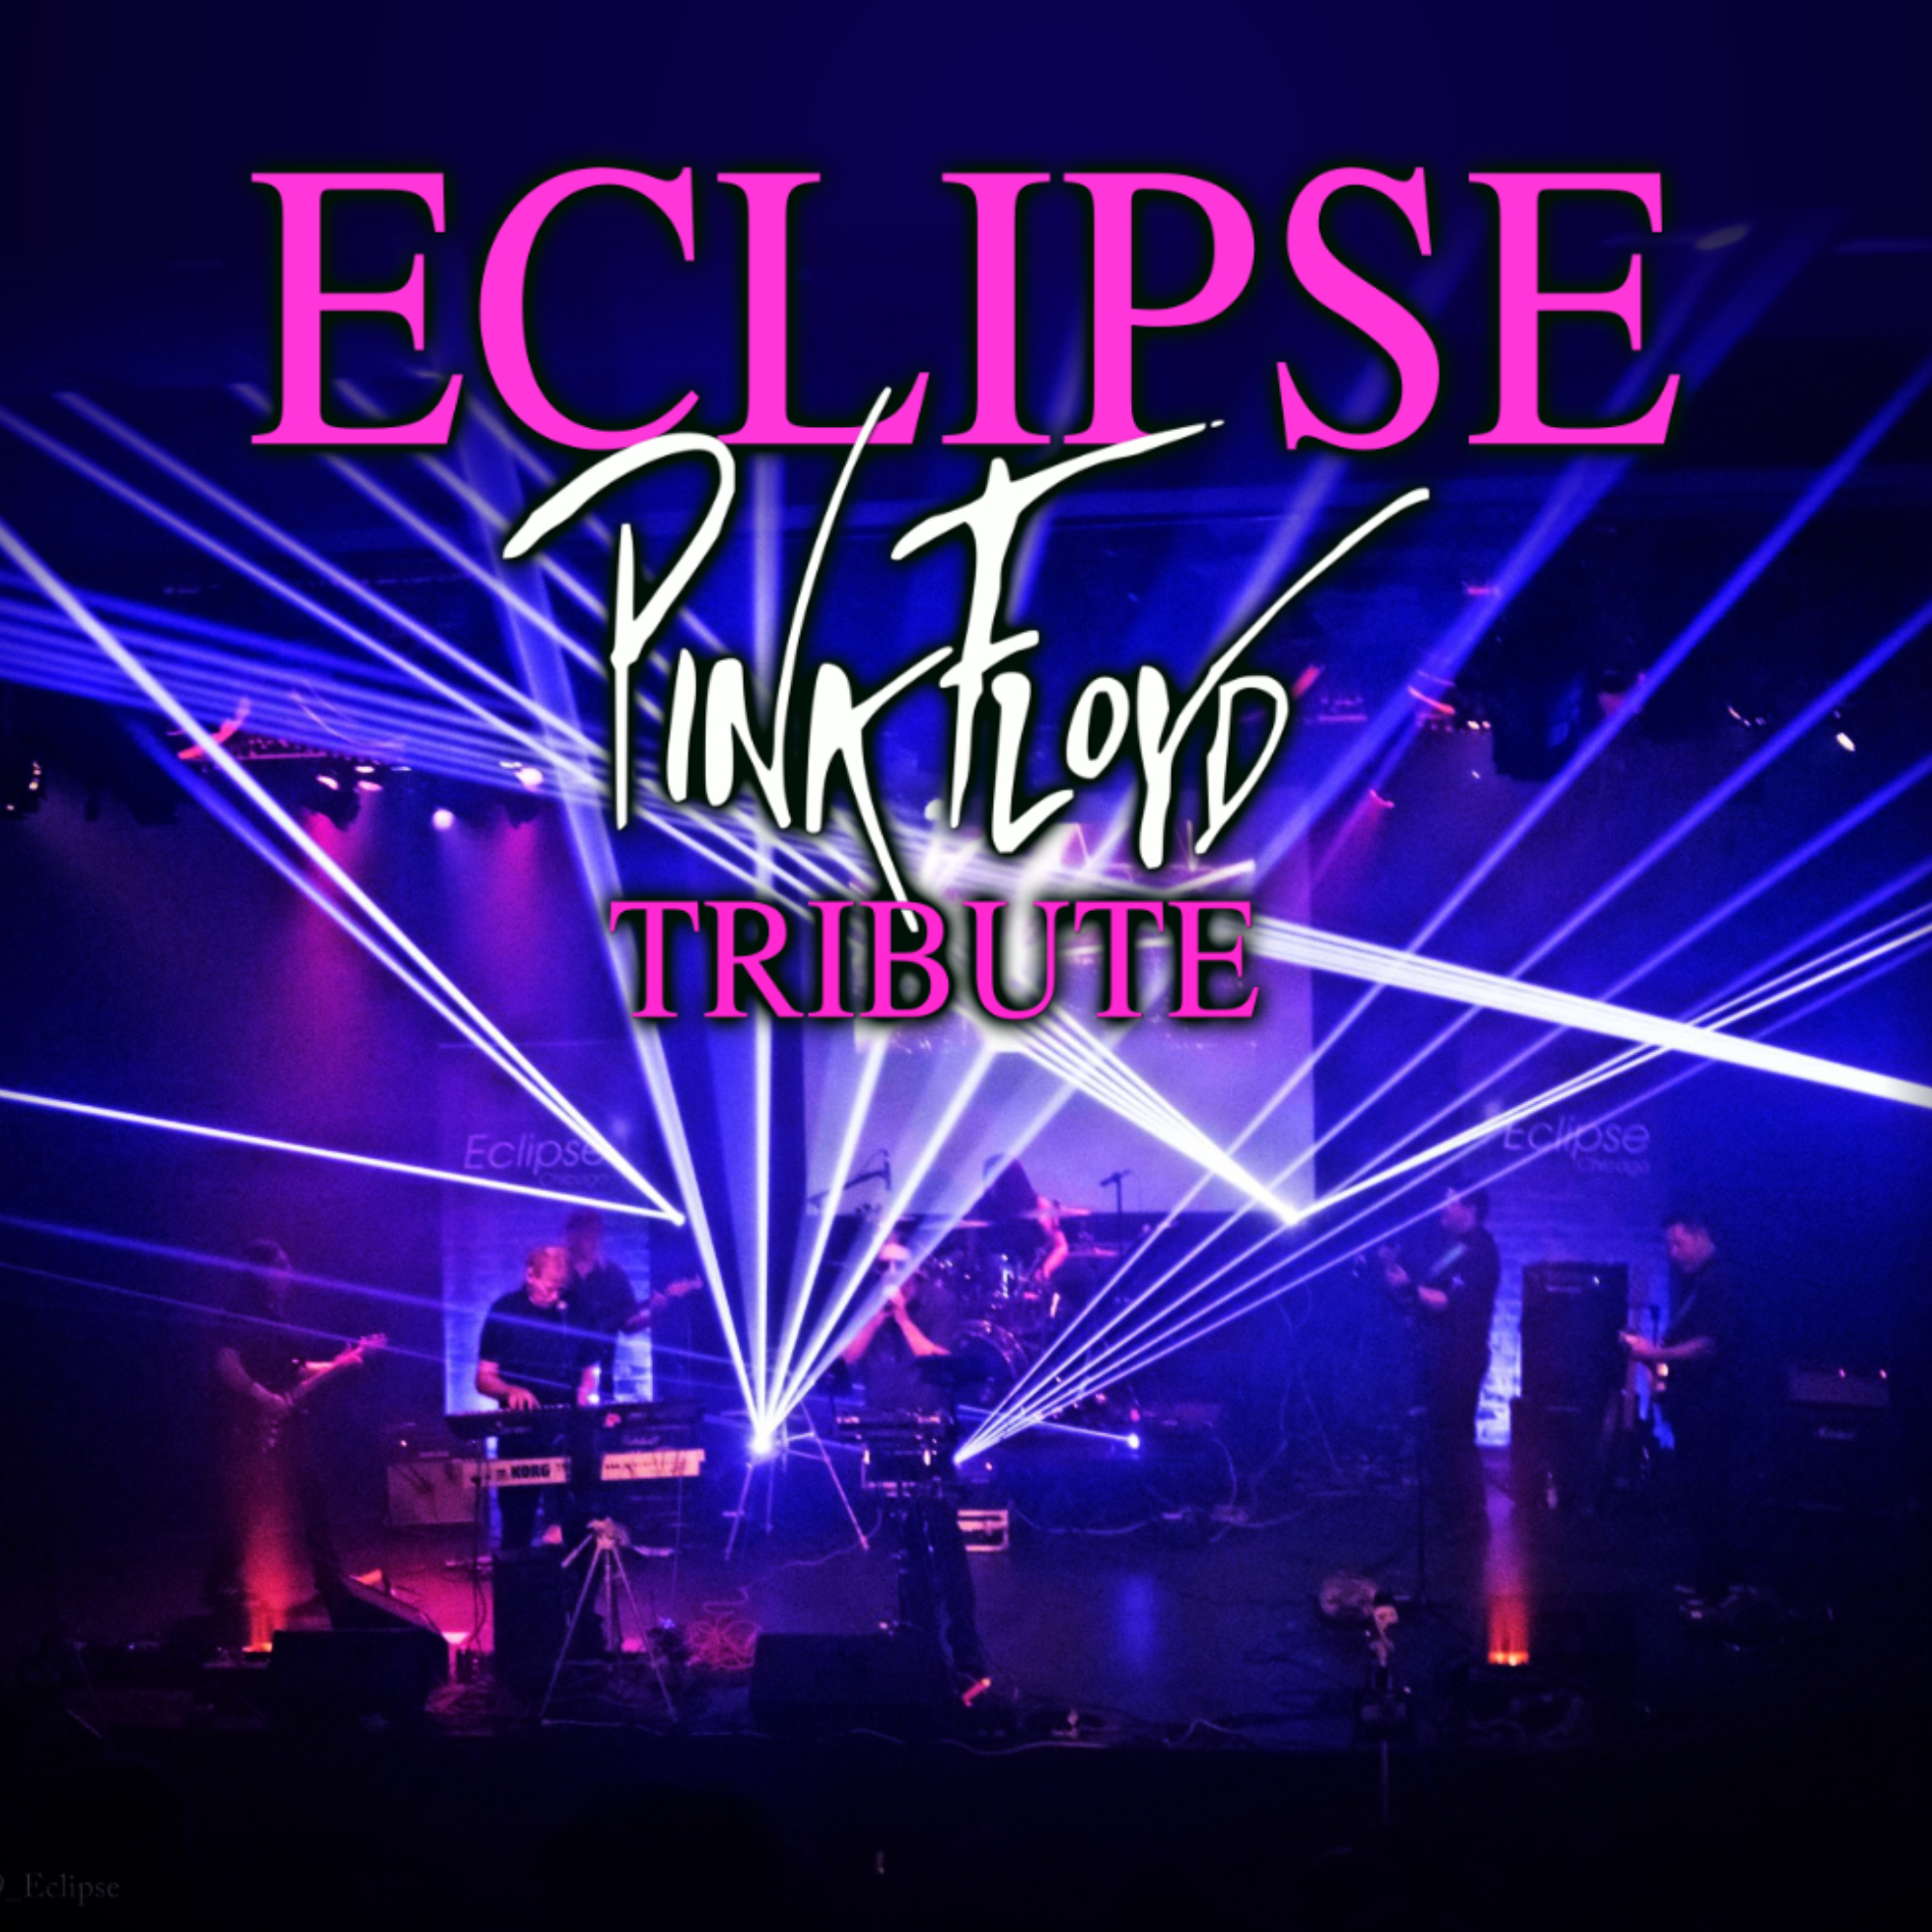 Pink Floyd Tribute - Eclipse show poster